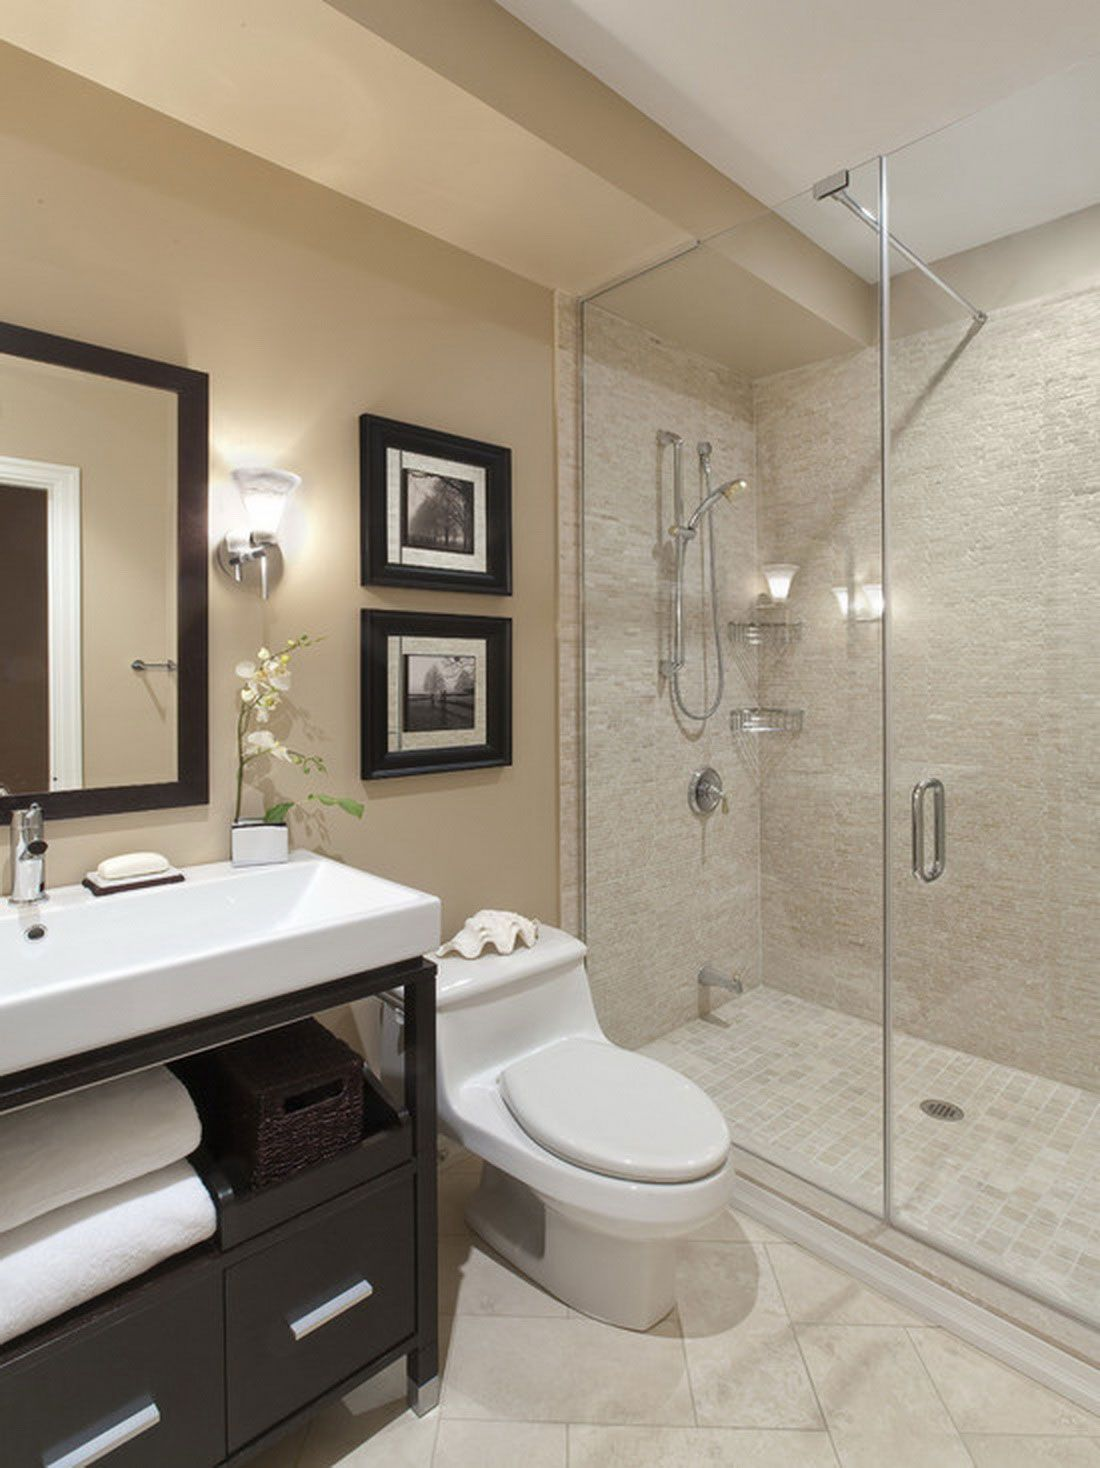 15 extraordinary transitional bathroom designs for any home - Modern Bathroom Designs